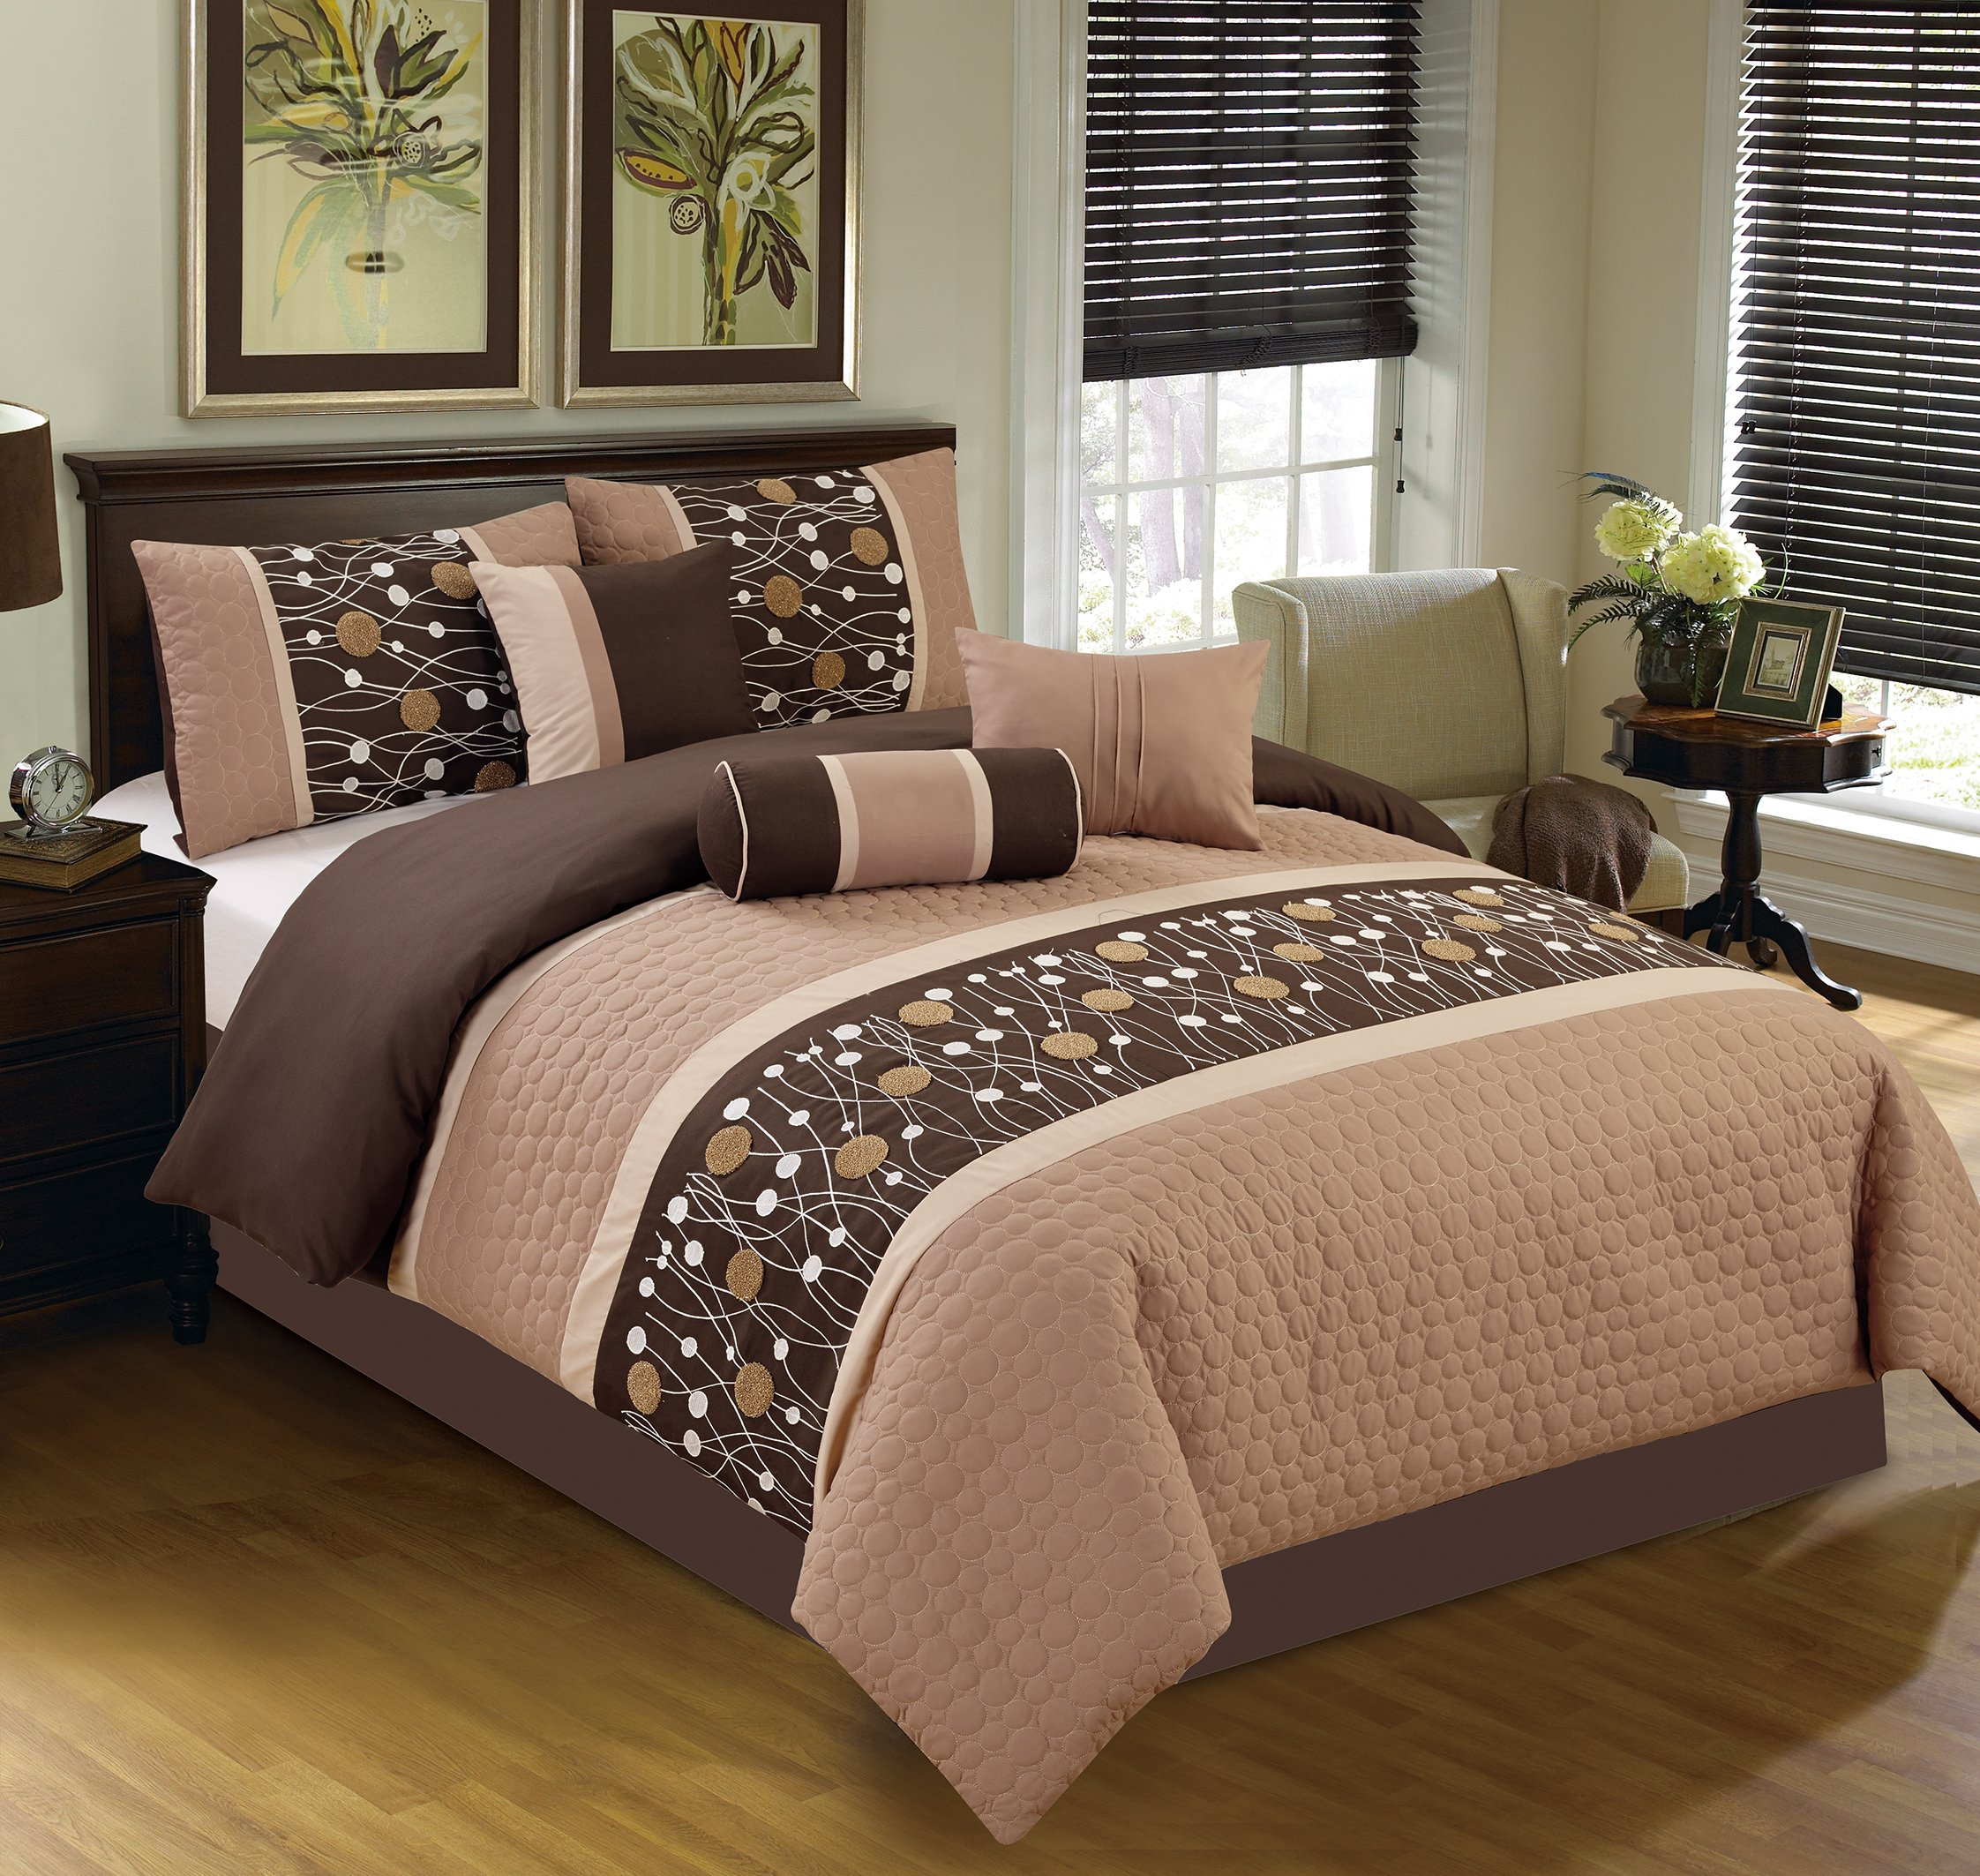 Elight Home 20839King Chinensis Embrodiery King Size Comforter Set - 7 Piece